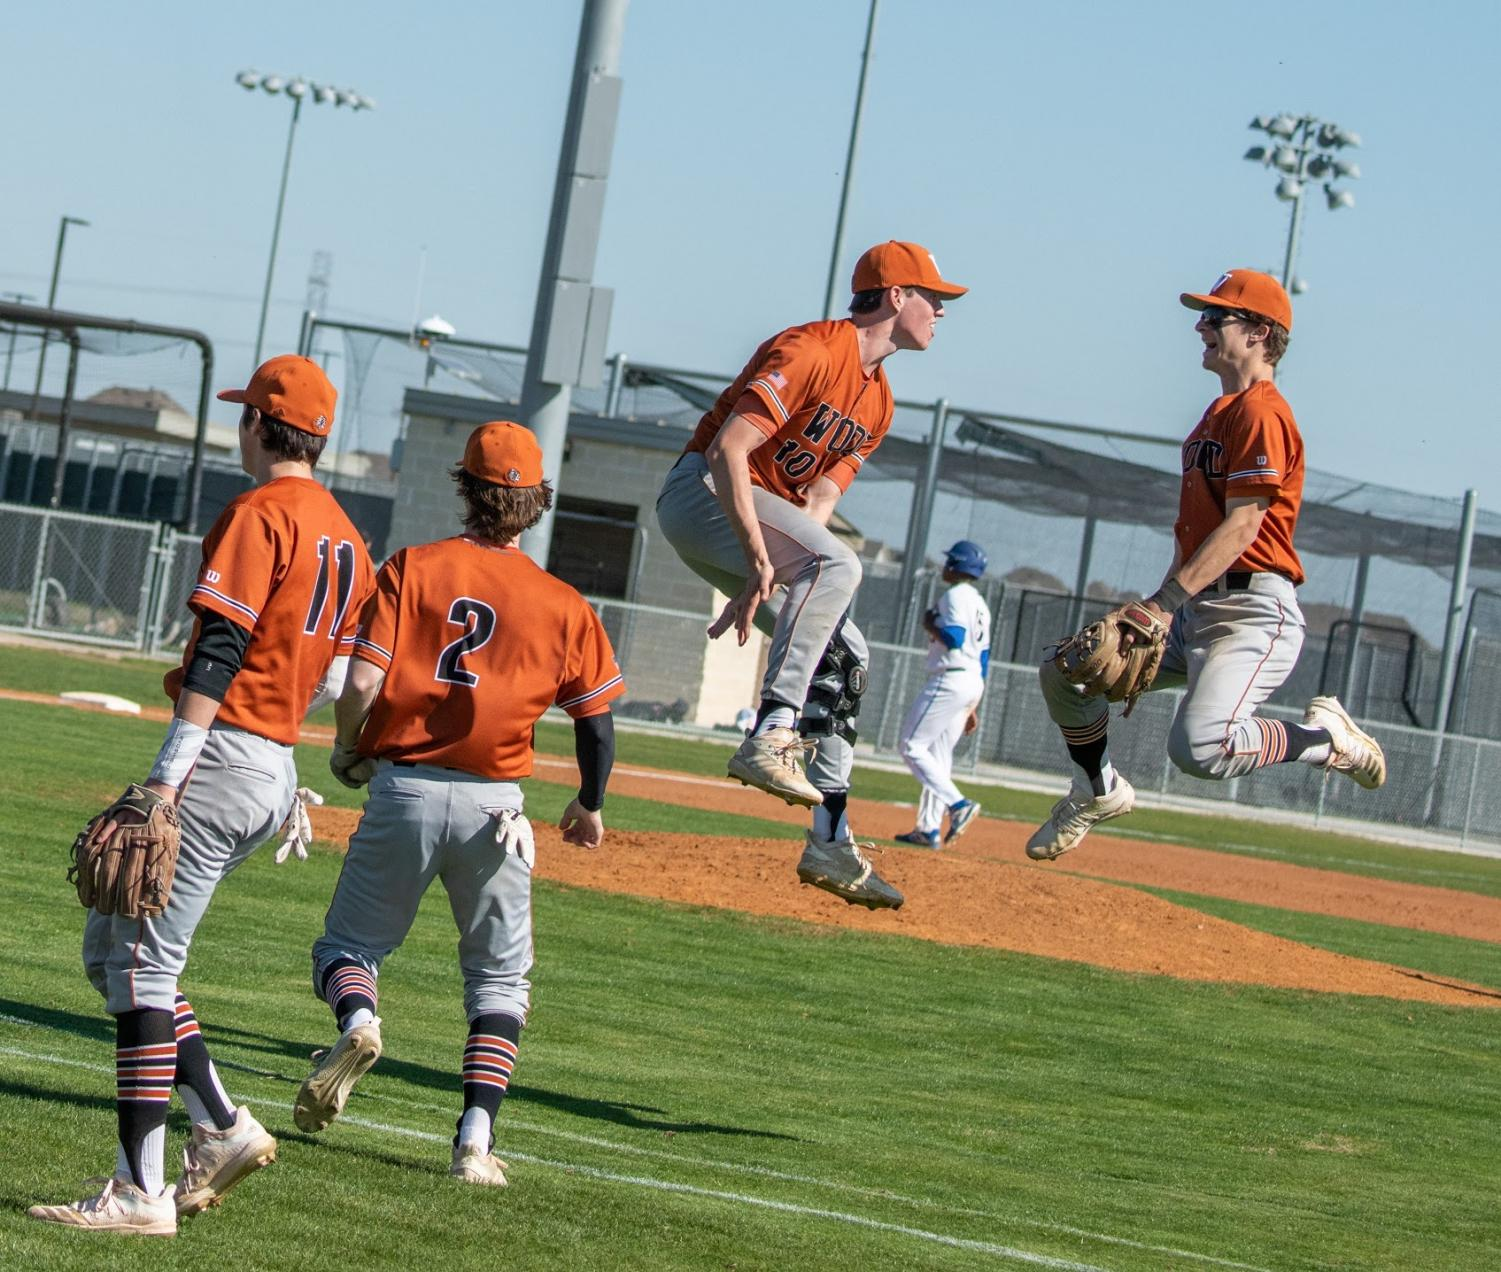 GALLERY%3A+Varsity+Baseball+Undefeated+In+First+Tournament